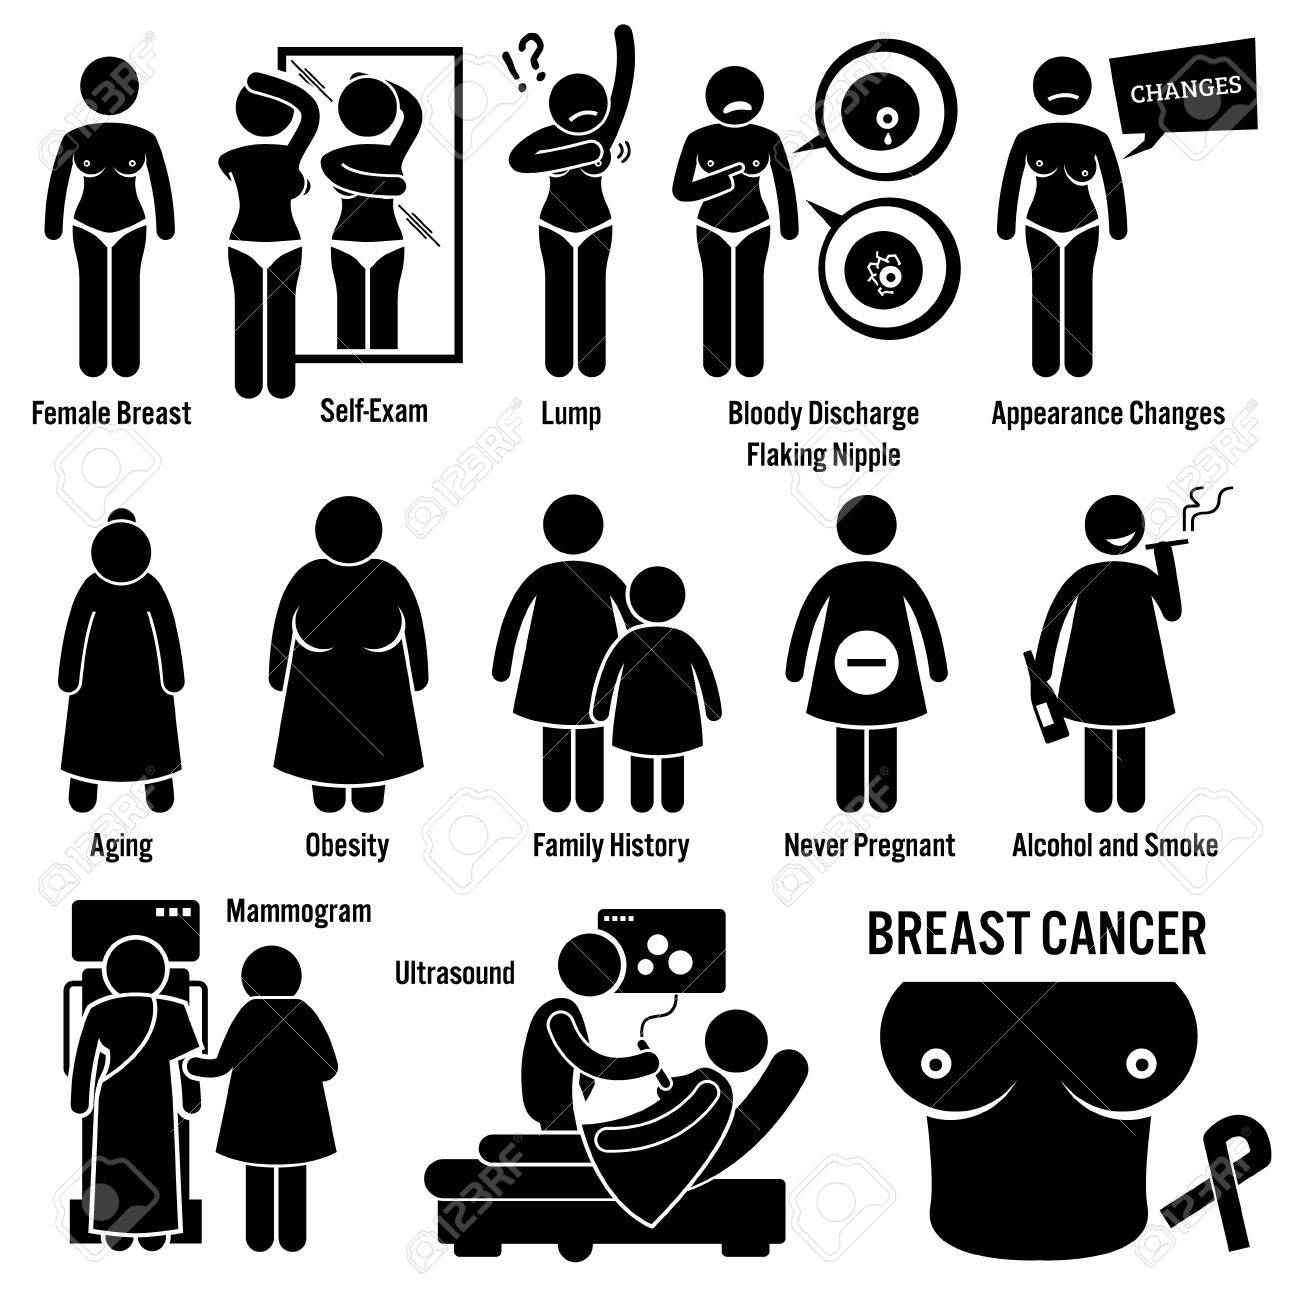 Breast cancer symptoms causes risk factors diagnosis stick figure breast cancer symptoms causes risk factors diagnosis stick figure pictogram icons stock vector 50588938 biocorpaavc Images